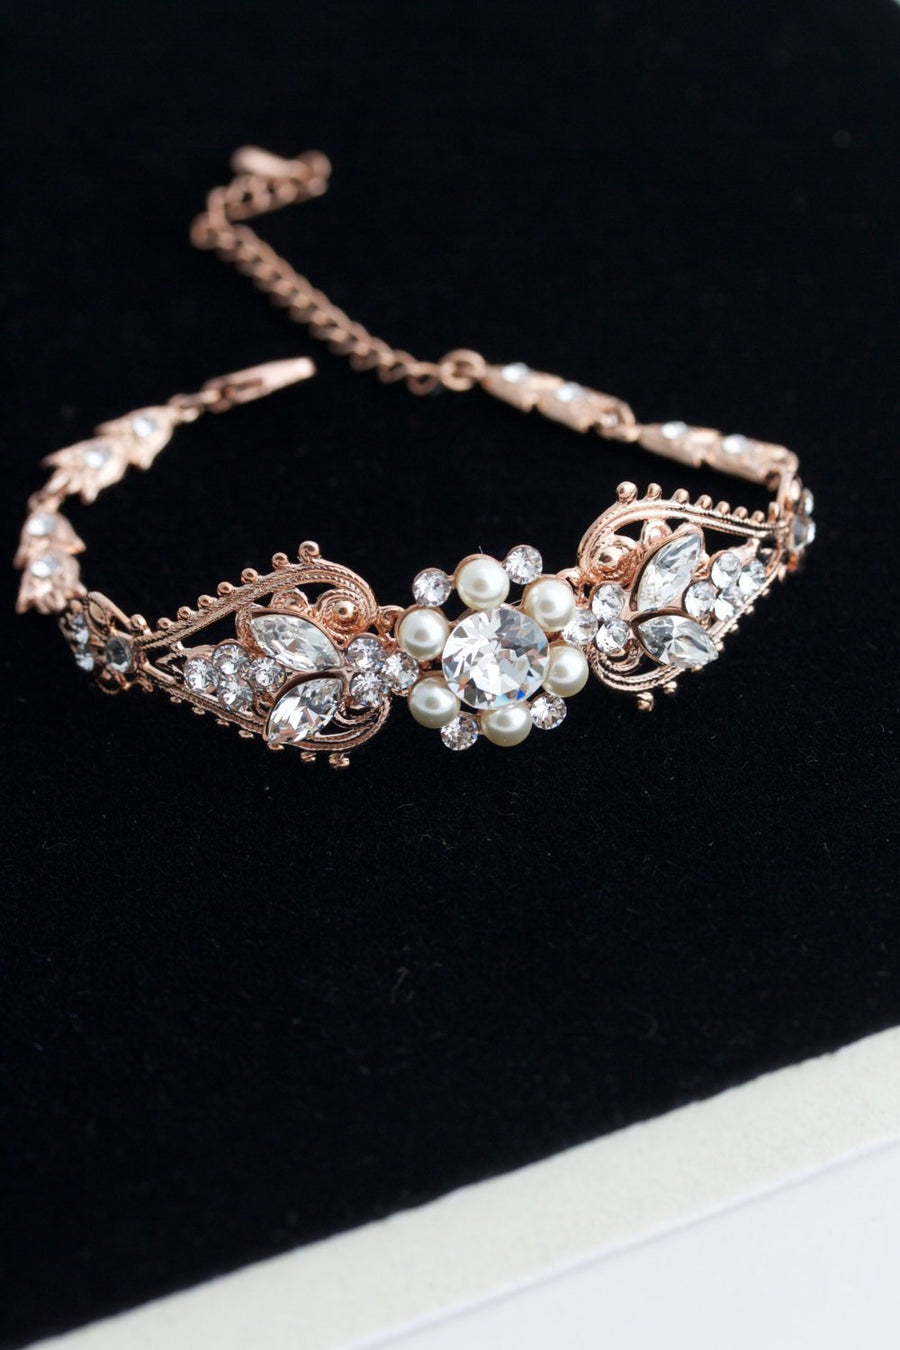 Paris Rose Gold Bridal Cuff Bracelet - Lulu Splendor